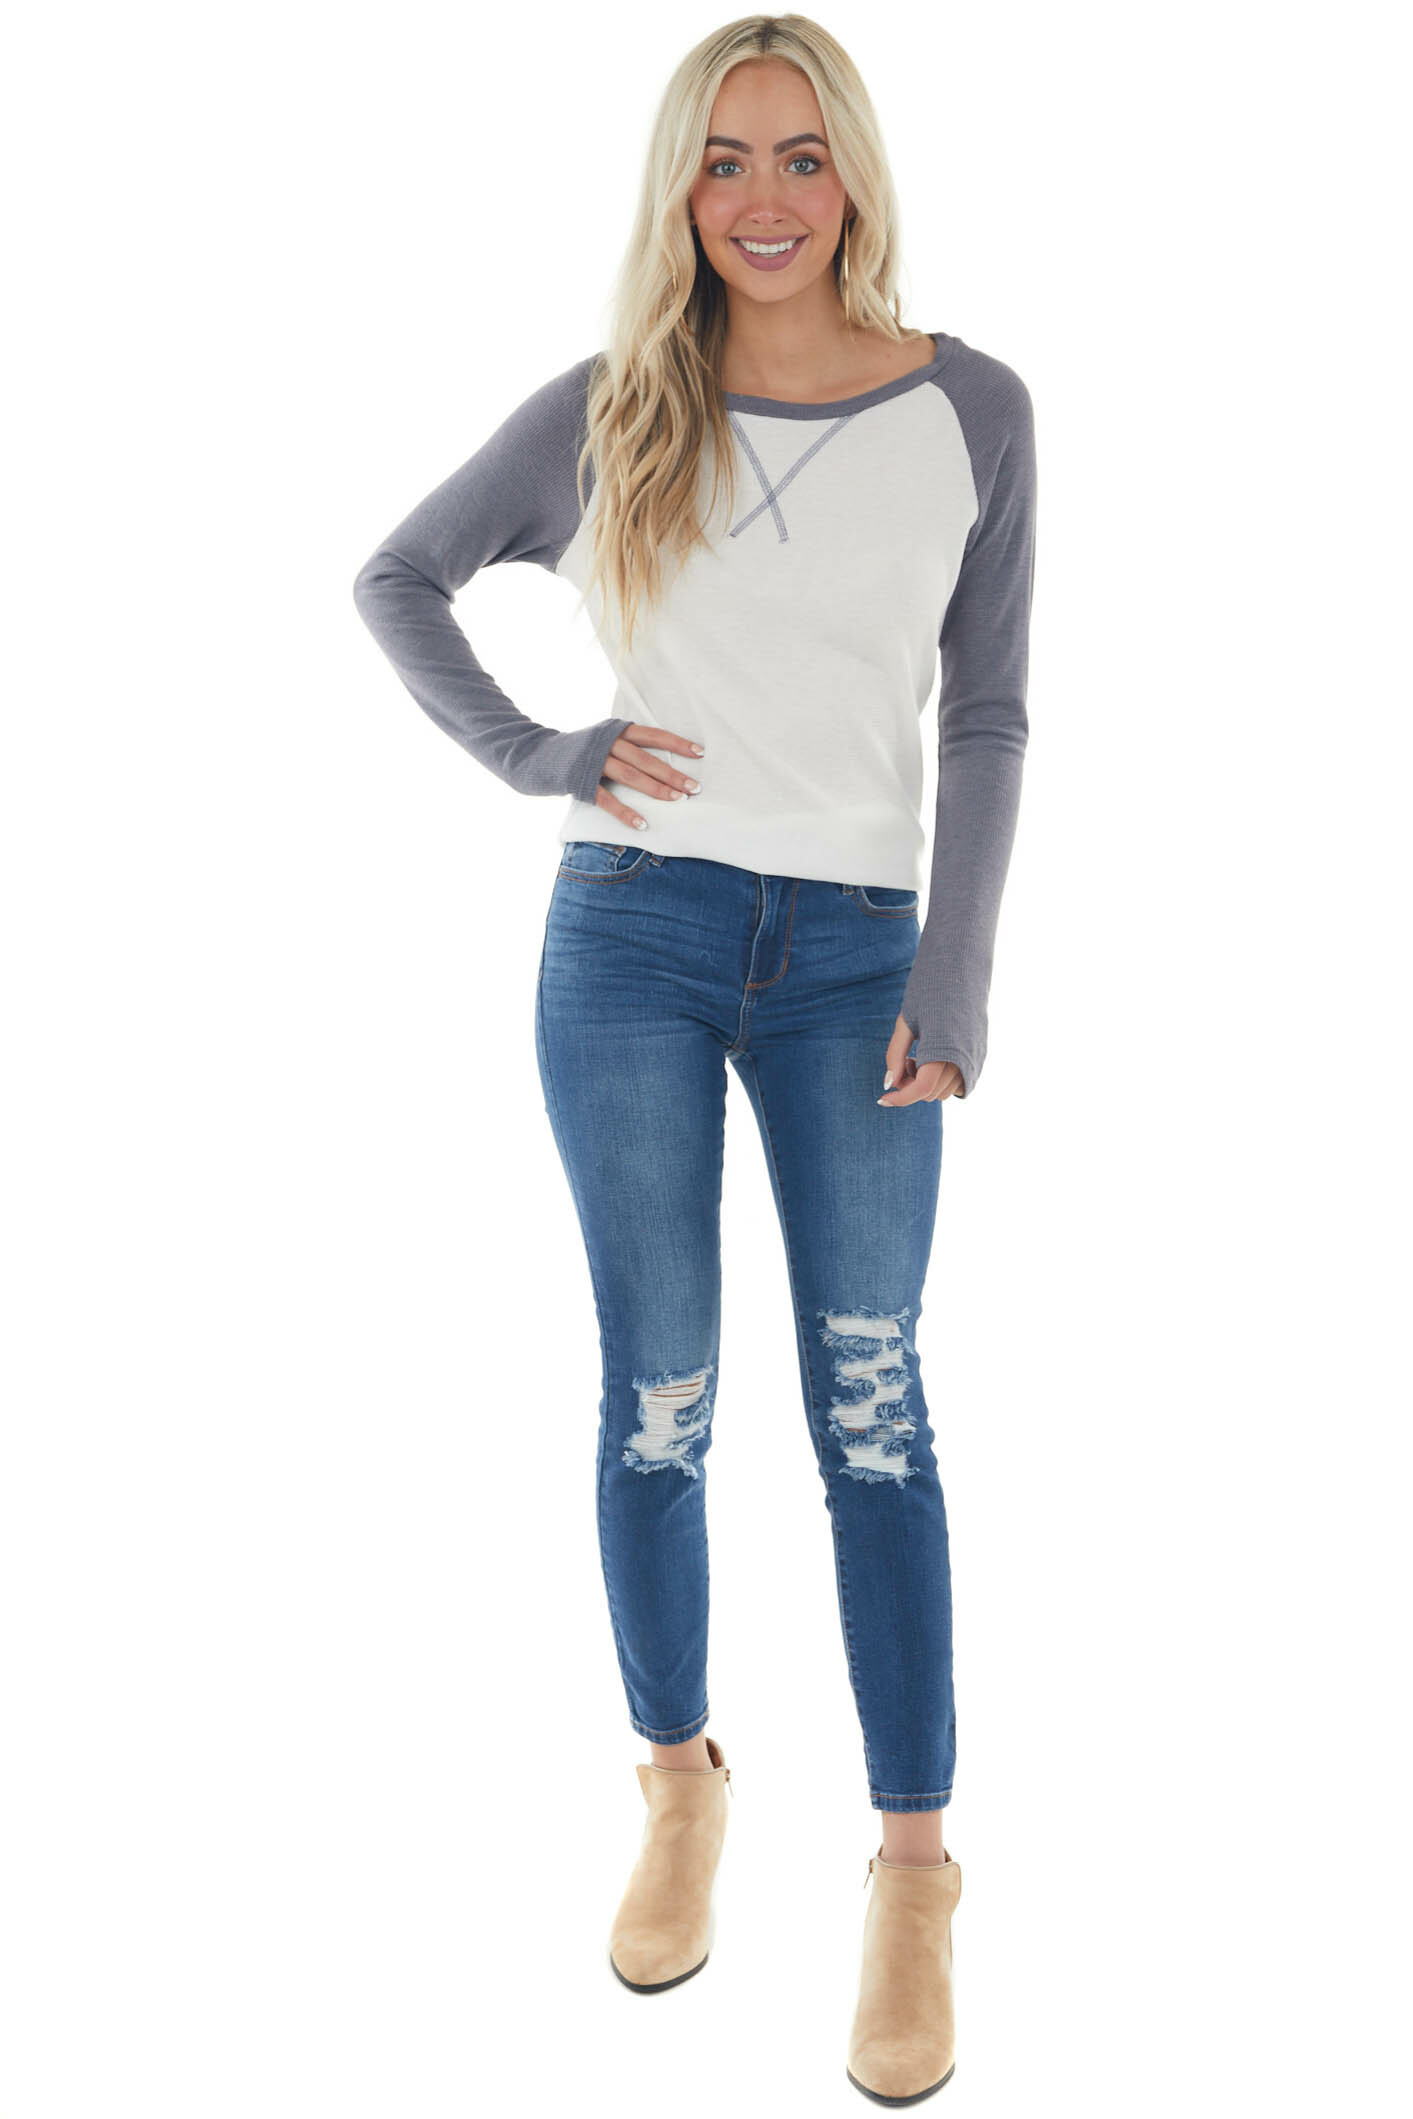 Stormy Grey and Ivory Long Sleeve Top with X Stitch Detail